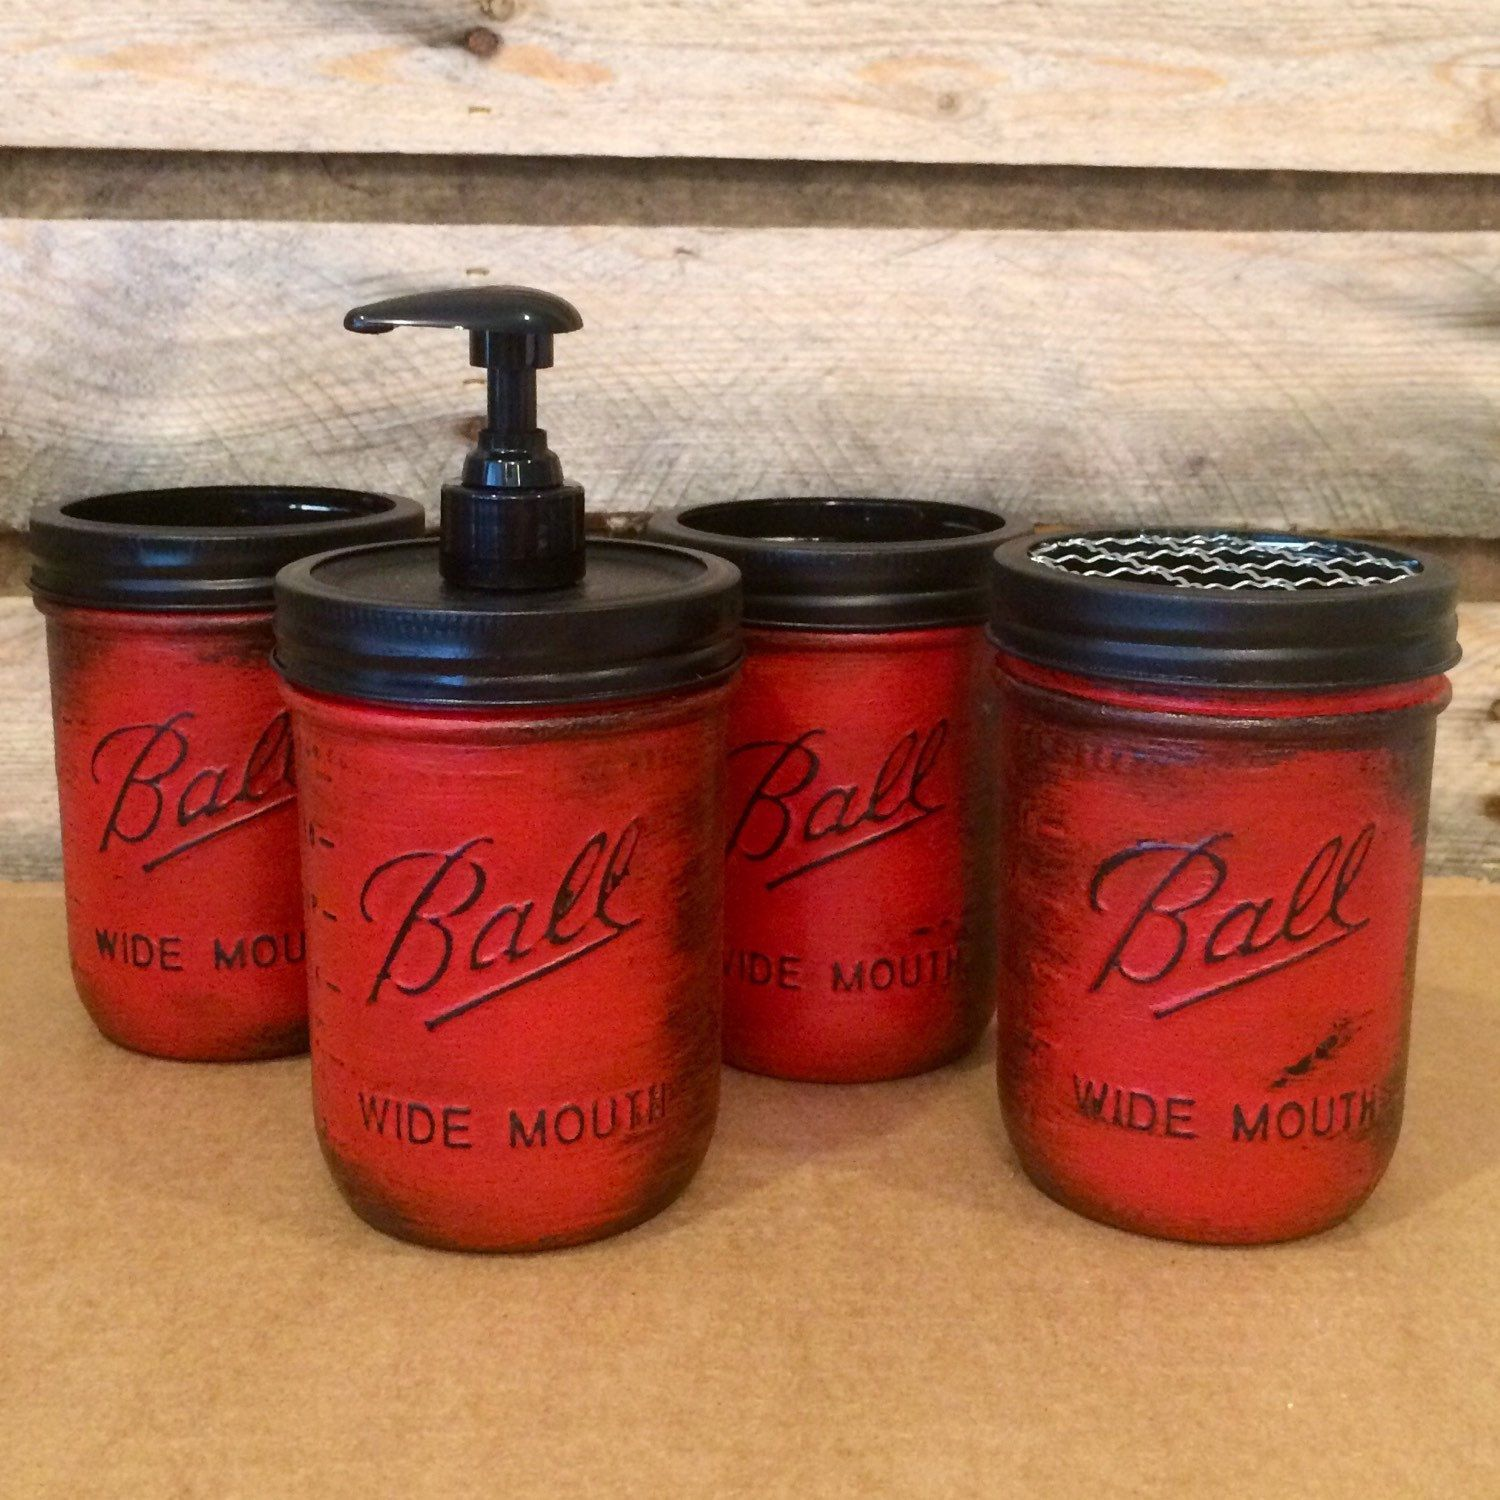 Just added this beautiful rustic red mason jar bathroom or desk set